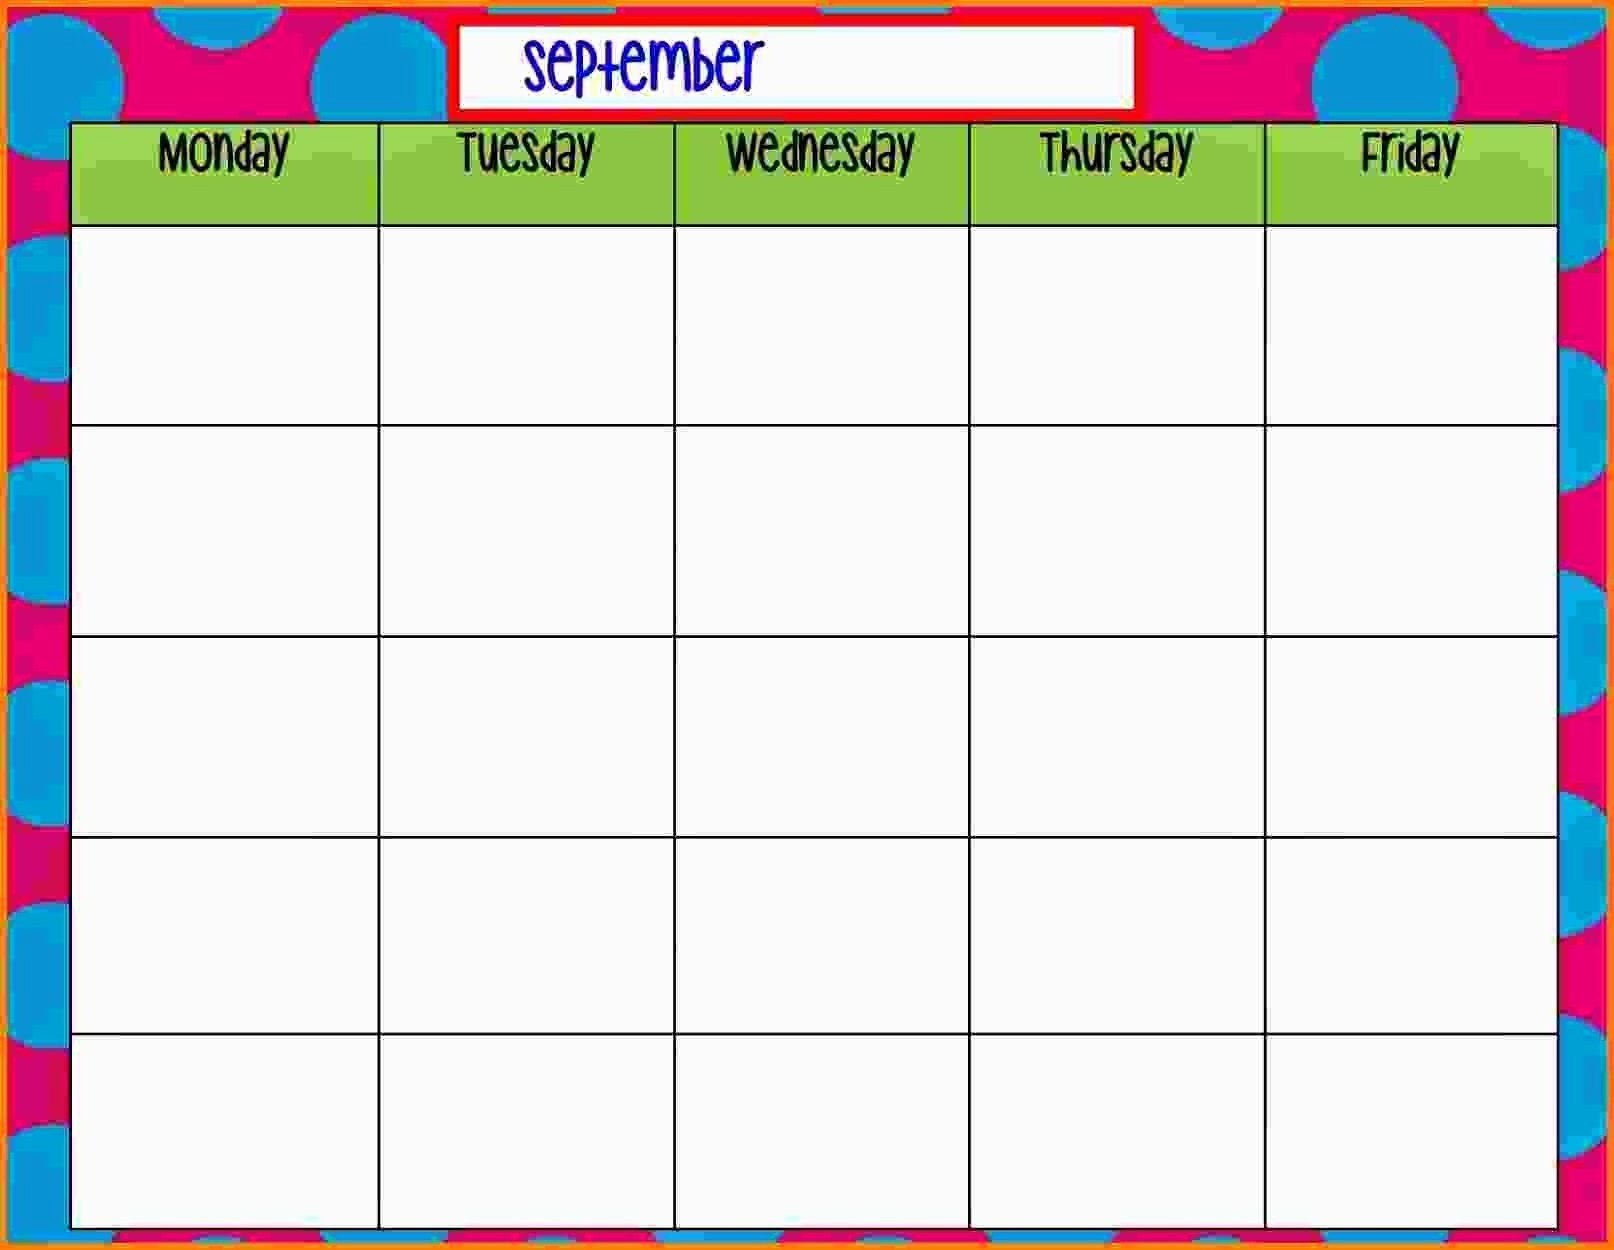 30 Monday To Friday Schedule Template In 2020 | Calendar Monday Through Friday Planner Template